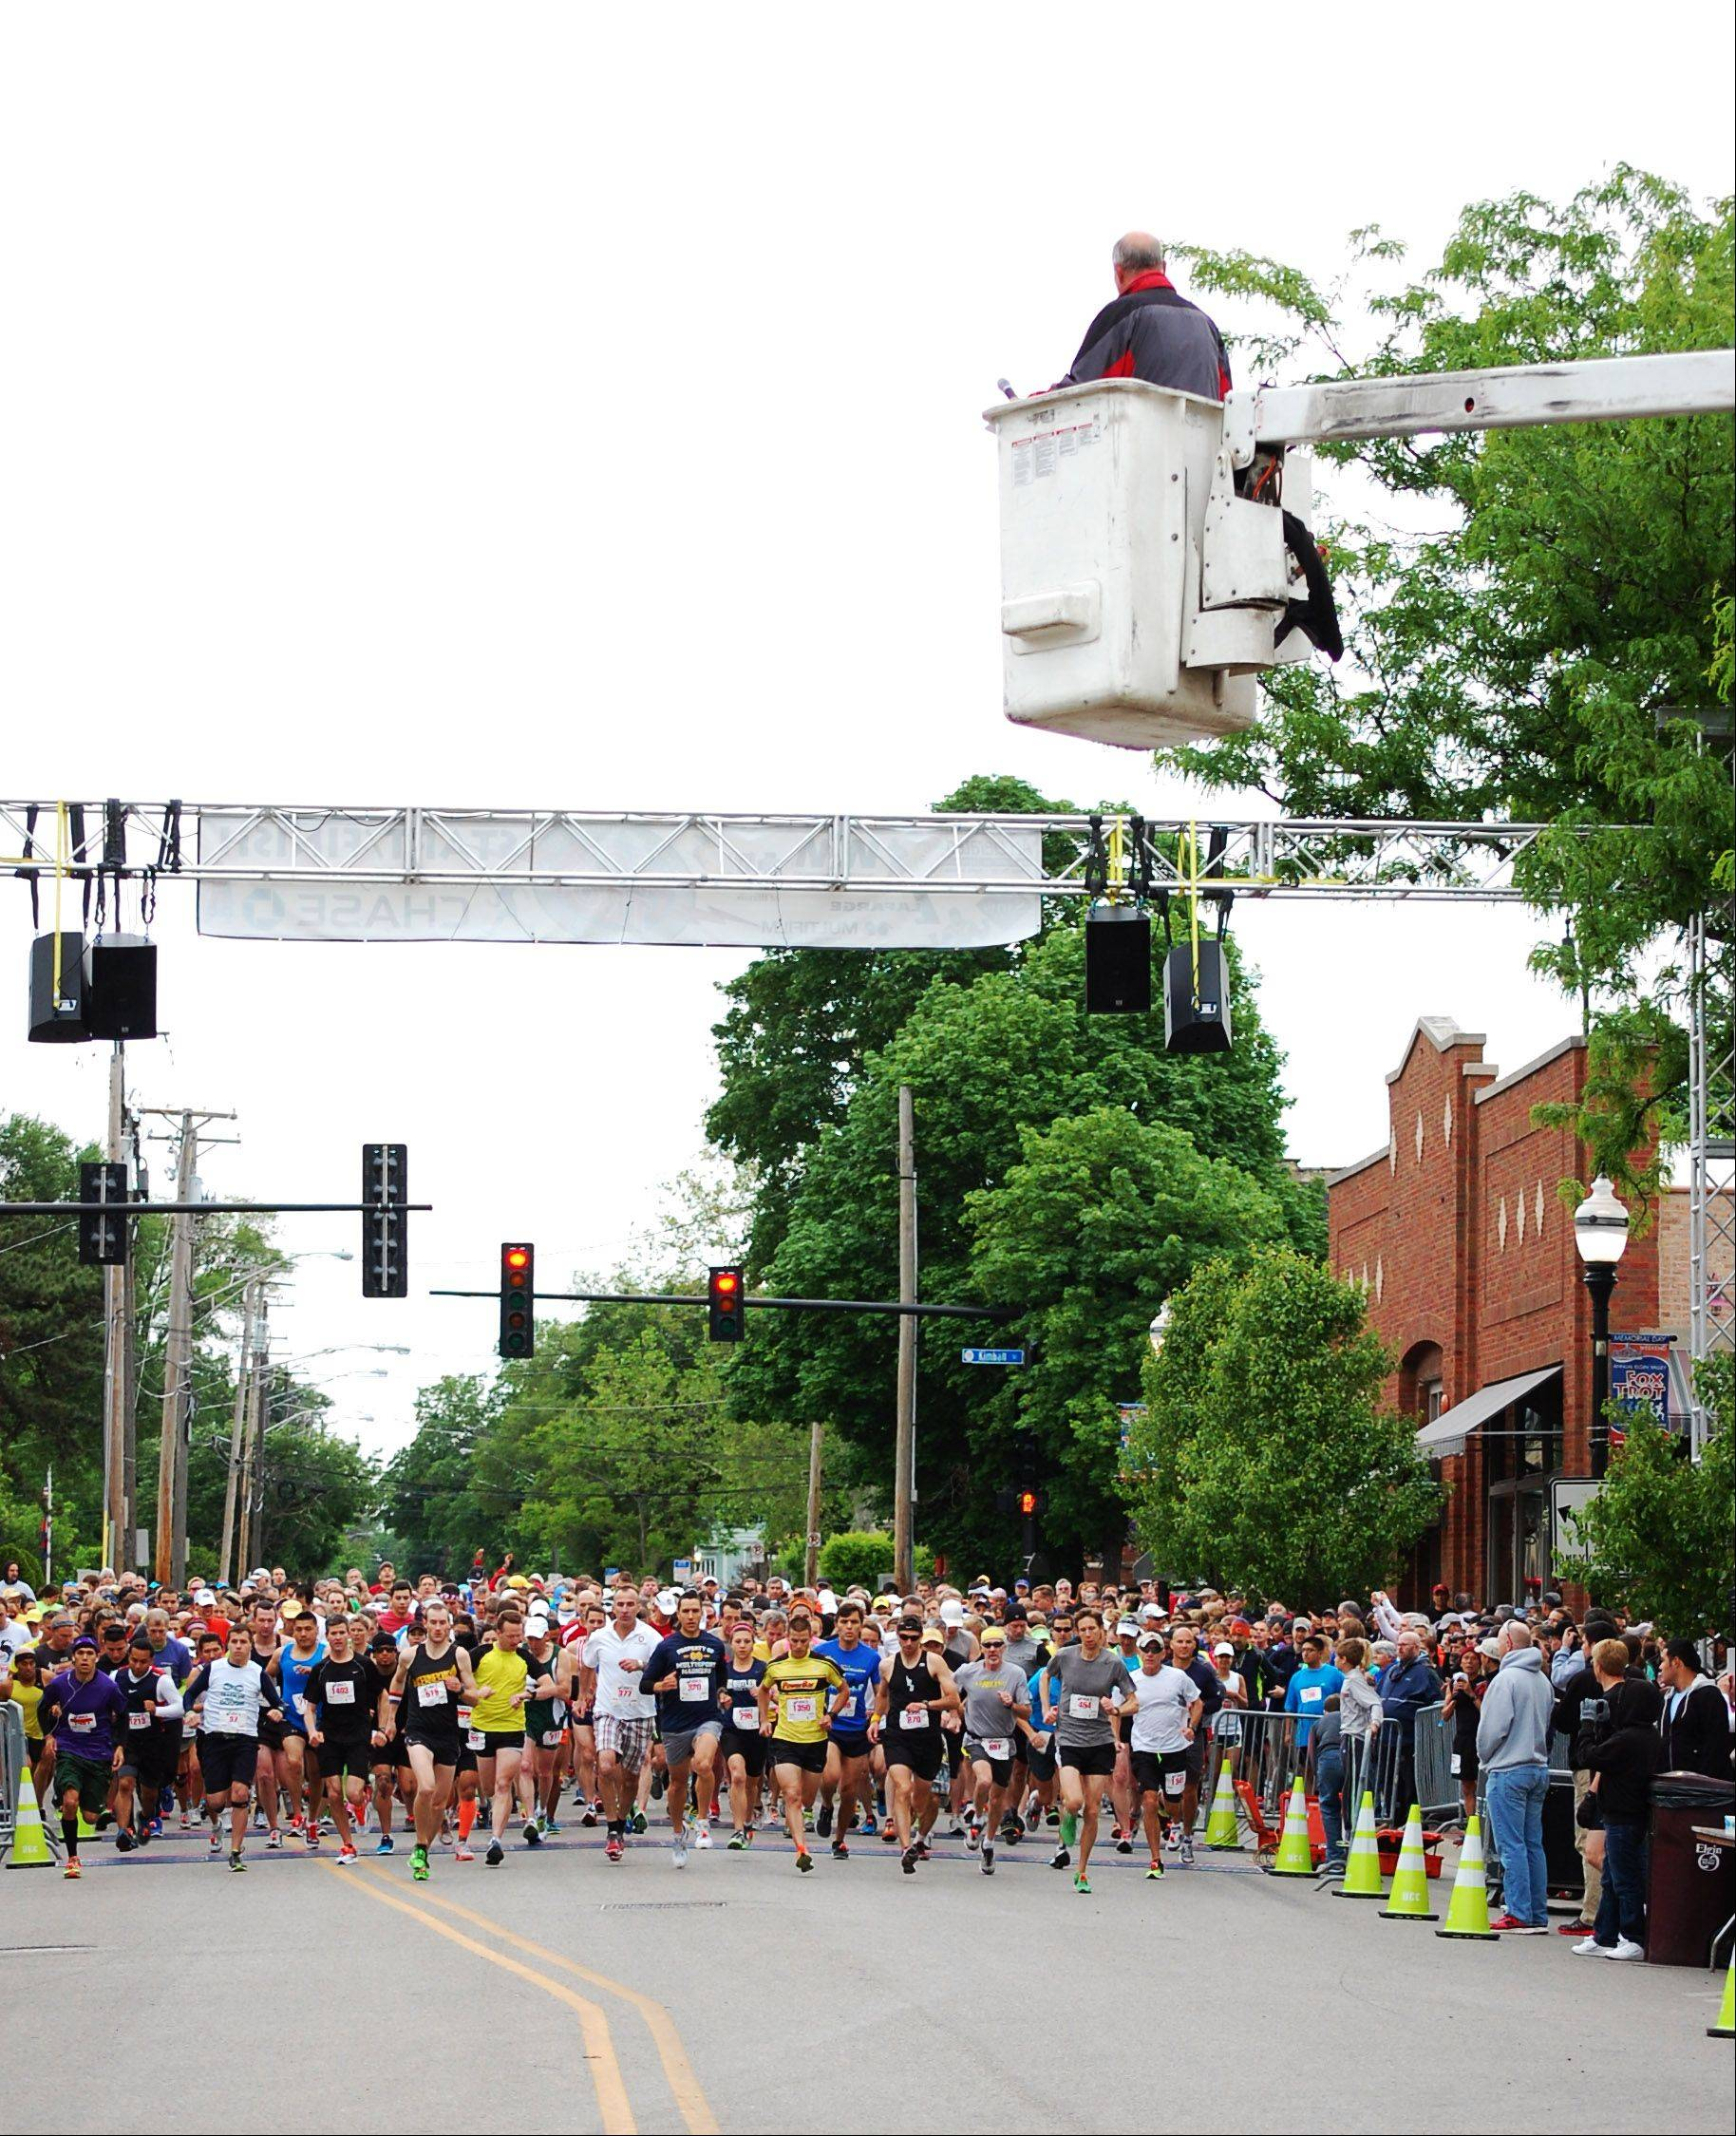 Saturday's Elgin Valley Fox Trot was kicked off by Elgin Mayor David Kaptain. The Fox trot consisted of a 5K race, a 10-mile race, and a 2-mile walk in downtown Elgin.